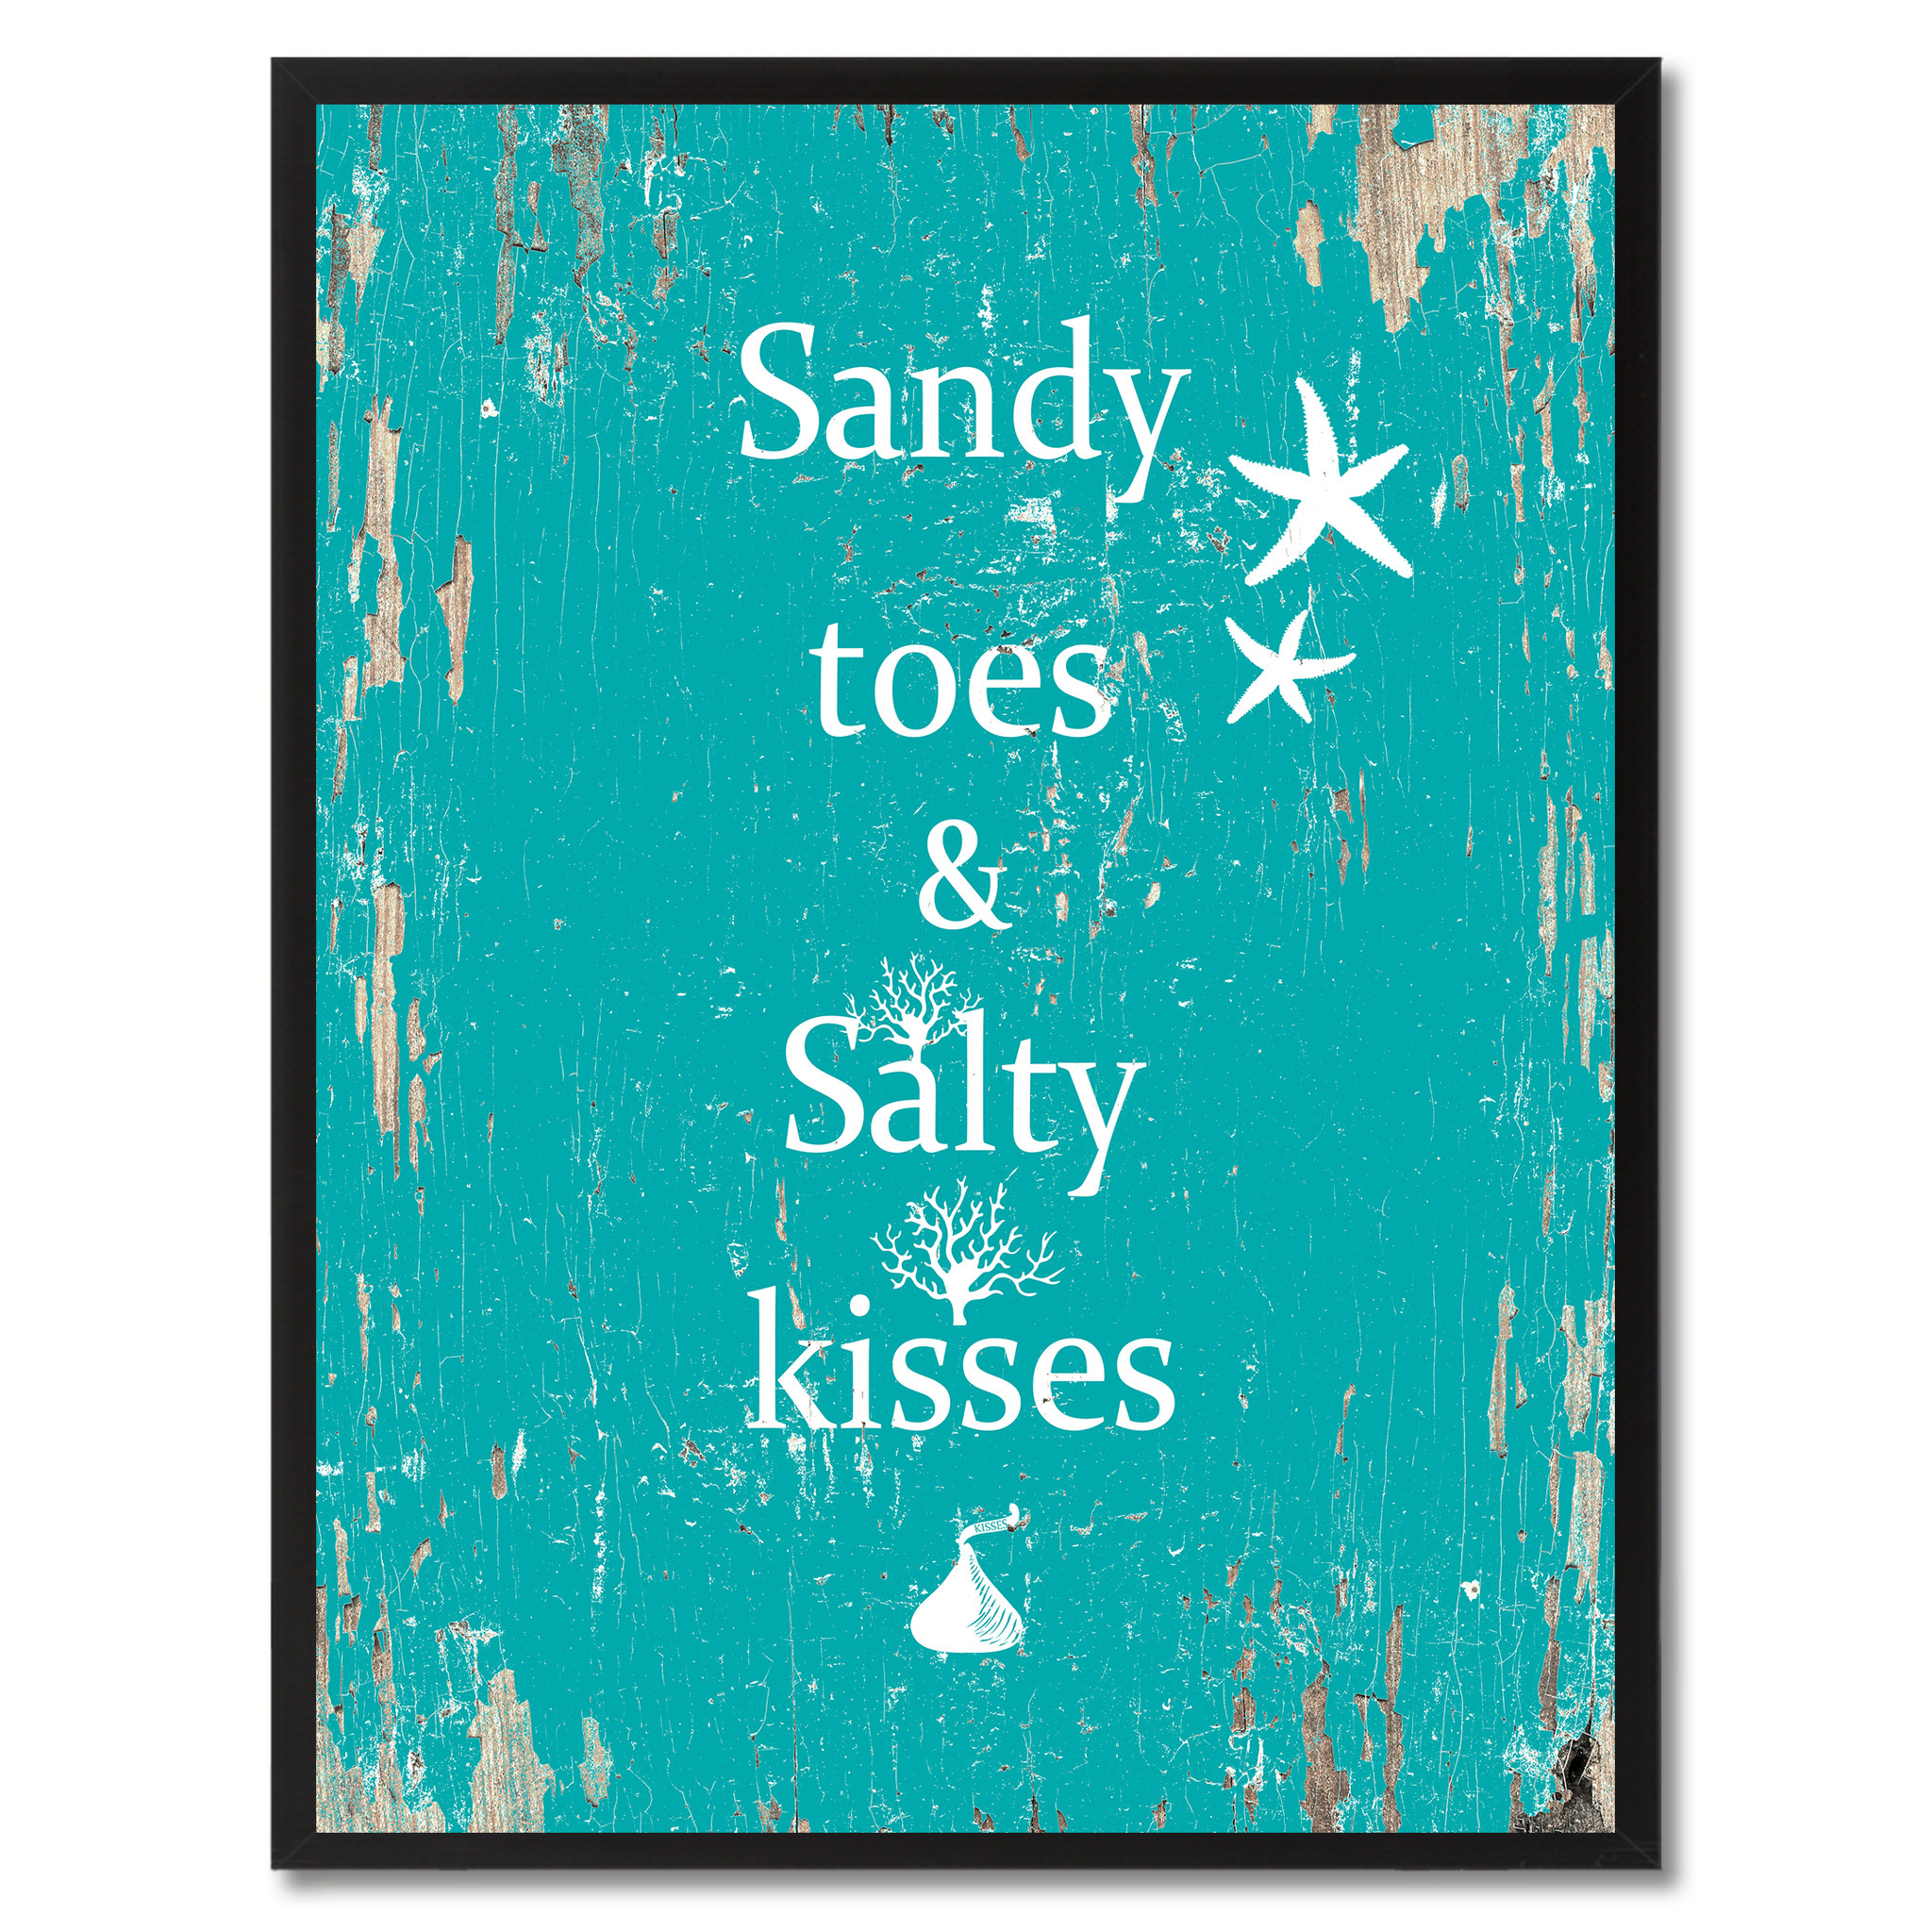 """Sandy Toes & Salty Kisses Saying Canvas Print, Black Picture Frame Home Decor Wall Art Gifts - 7\""""x9\"""""""